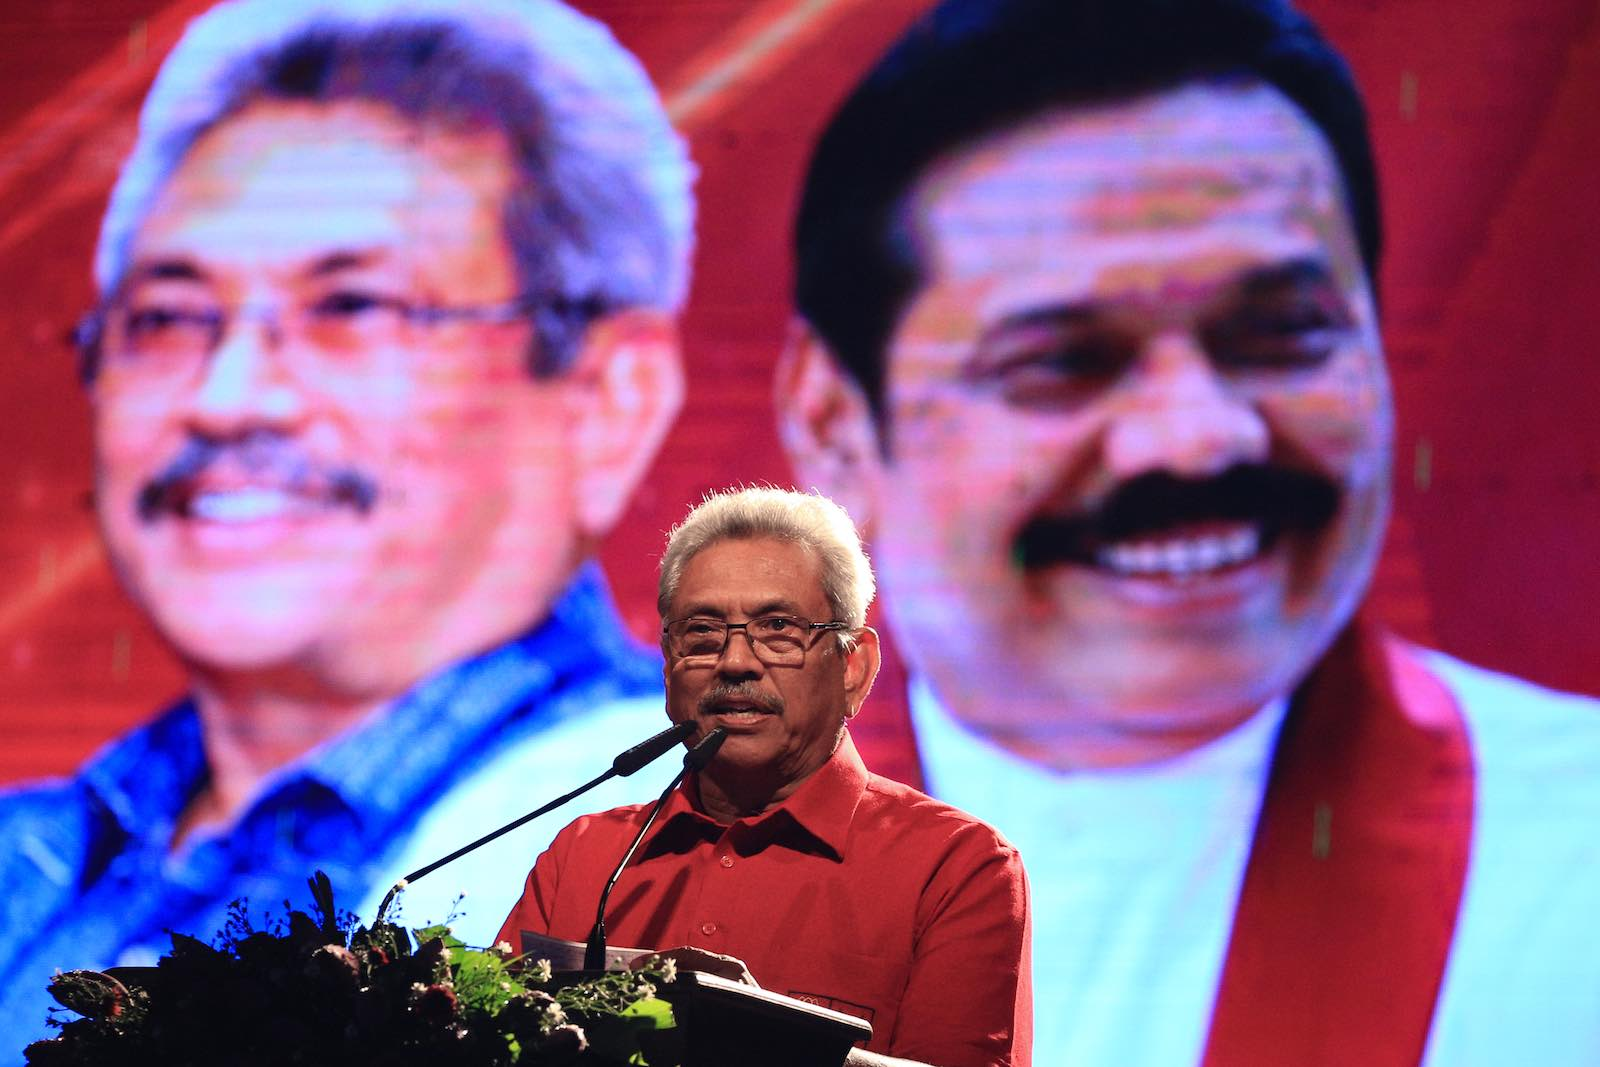 Gotabaya Rajapaksa delivers a speech during his final election rally, Colombo, Sri Lanka, 13 November 2019. (Photo: Tharaka Basnayaka/NurPhoto via Getty Images)